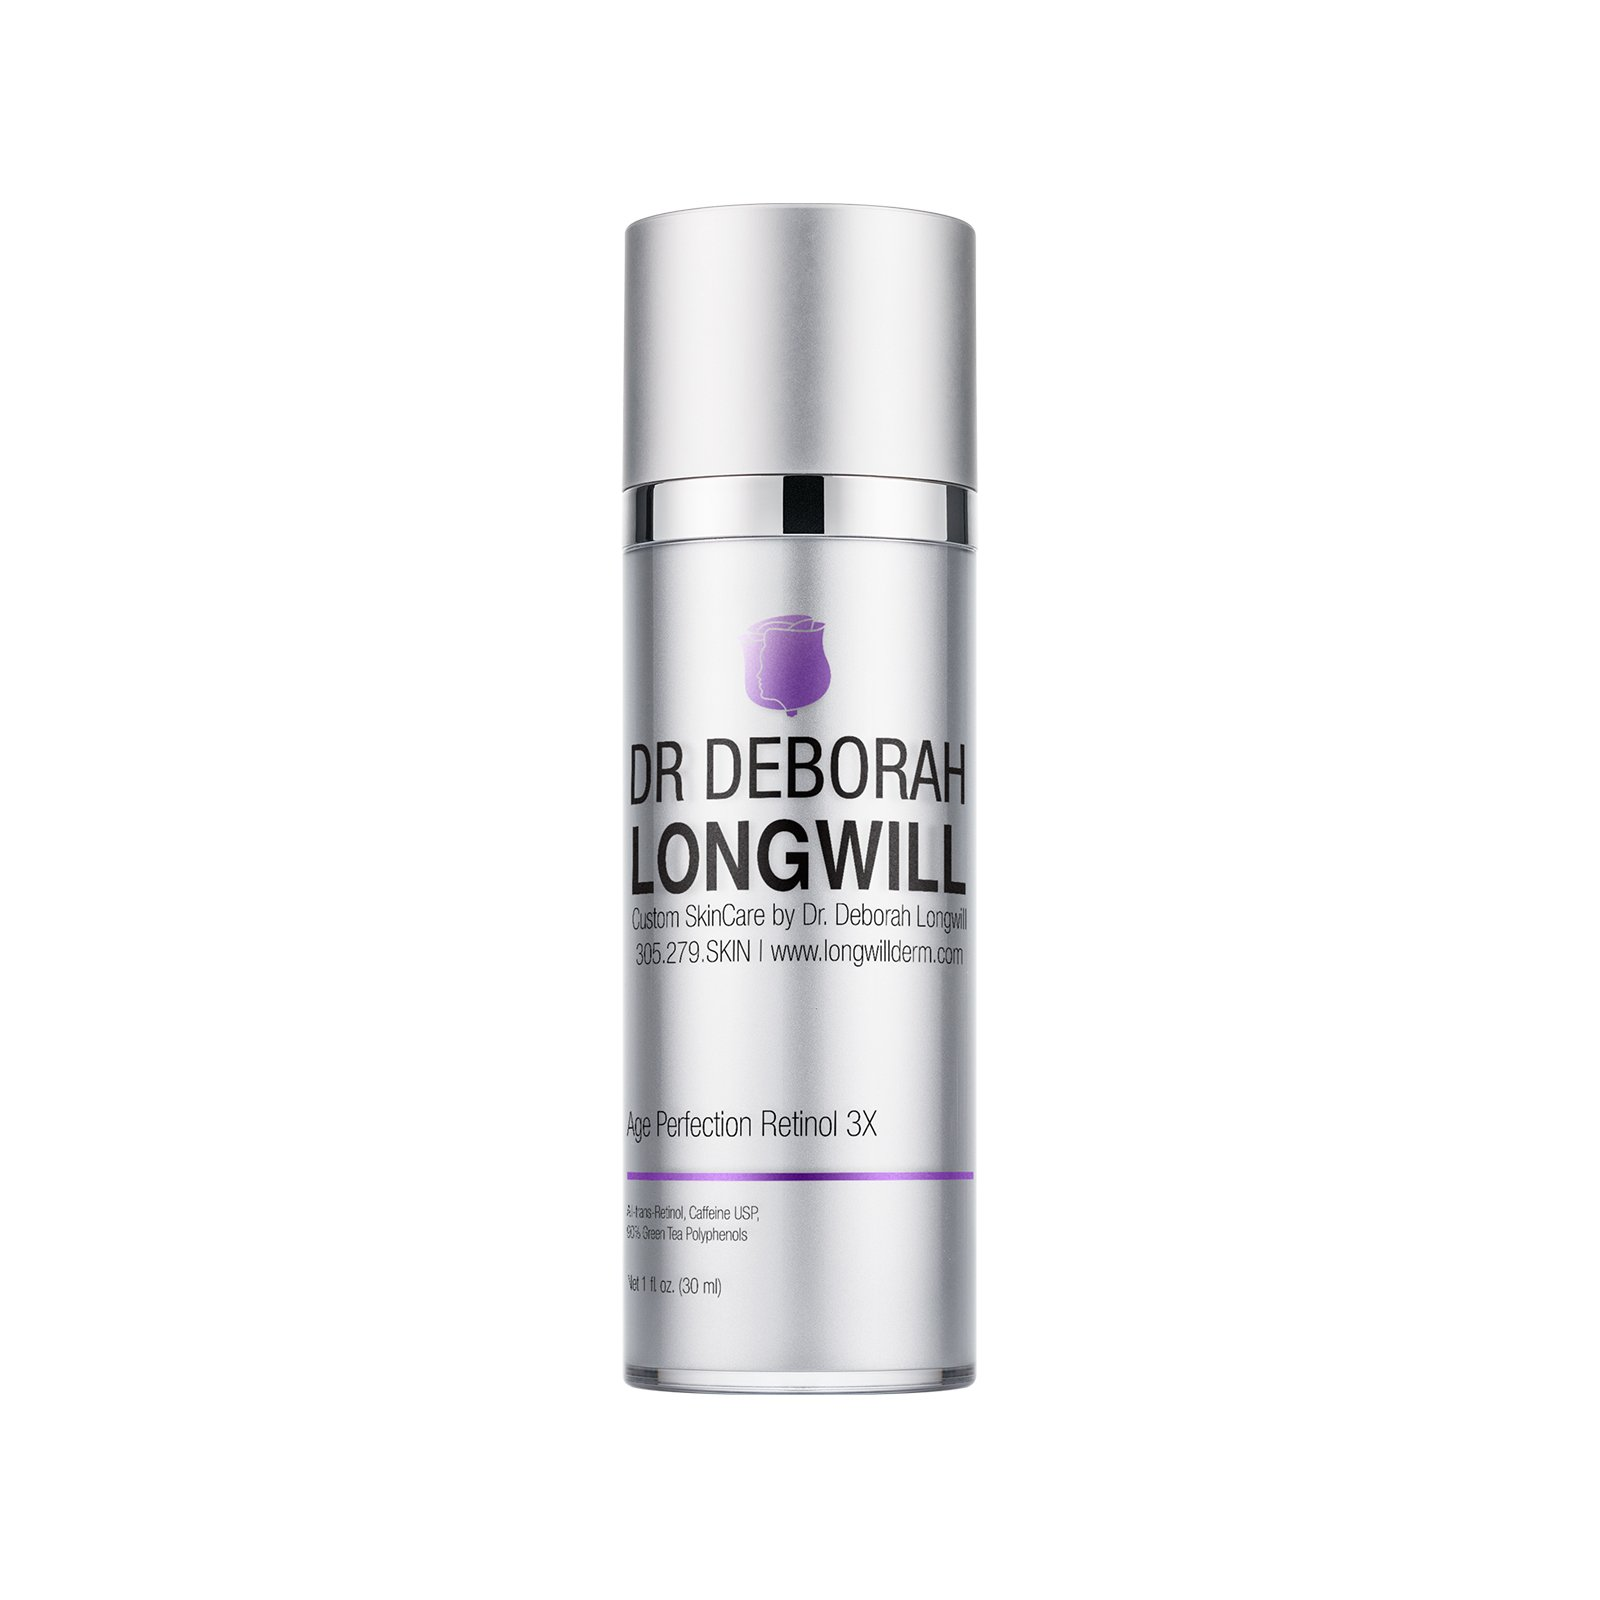 Age Perfection Retinol 3X